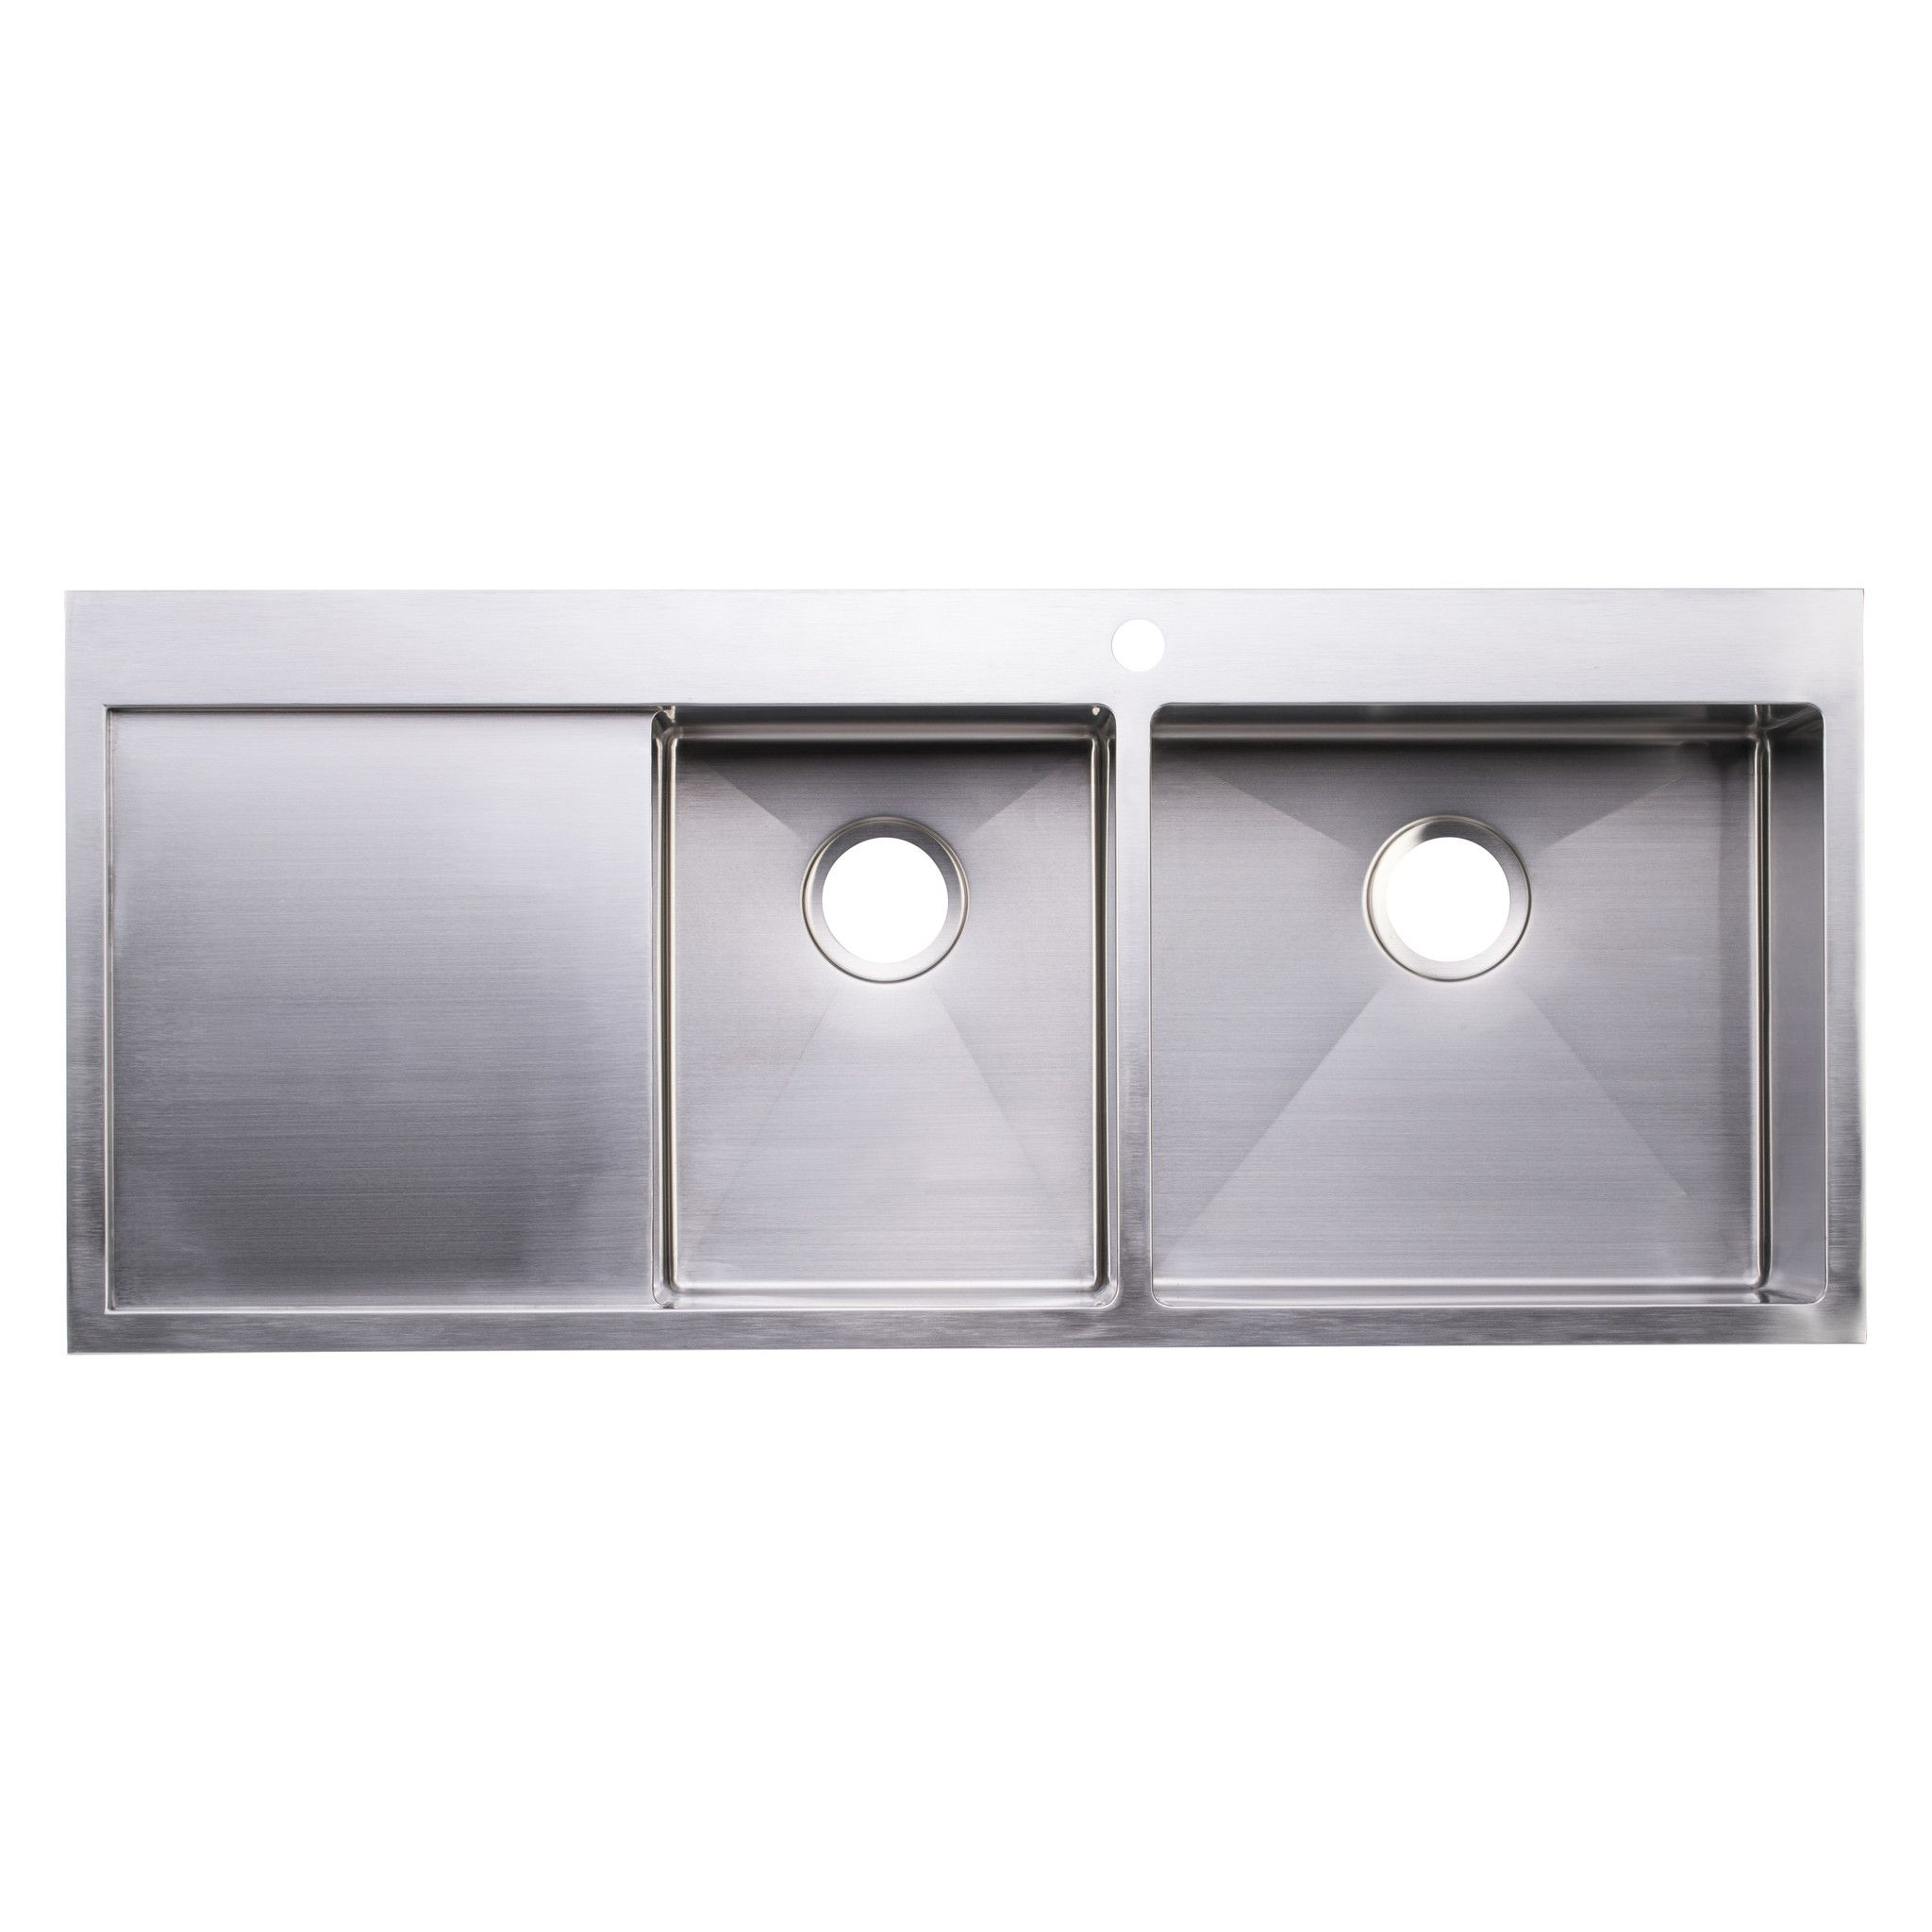 Bai 1234 48 Handmade Stainless Steel Kitchen Sink Double Bowl With Drainboard Top Mount 16 Gaug Stainless Steel Kitchen Sink Steel Kitchen Sink Kitchen Sink